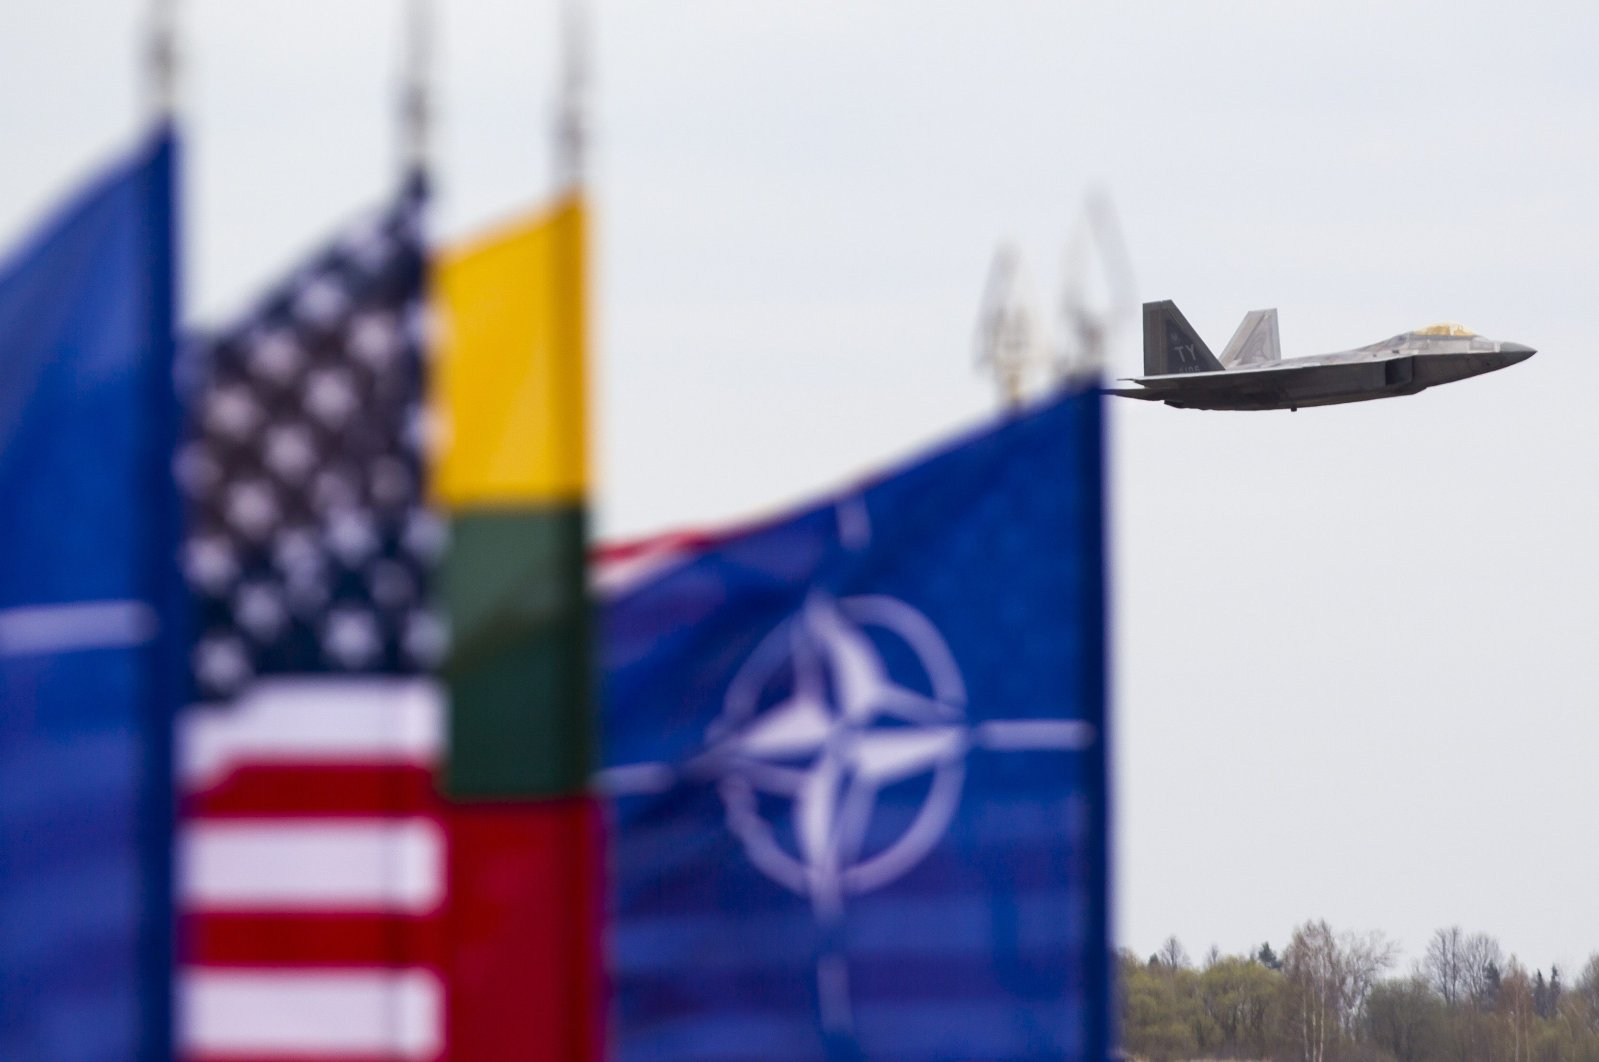 U.S. Air Force F-22 Raptor fighter jet lands at the Siauliai air base, some 230 kilometers (144 miles) east of the capital Vilnius, Lithuania, April 27, 2016. (AP Photo)